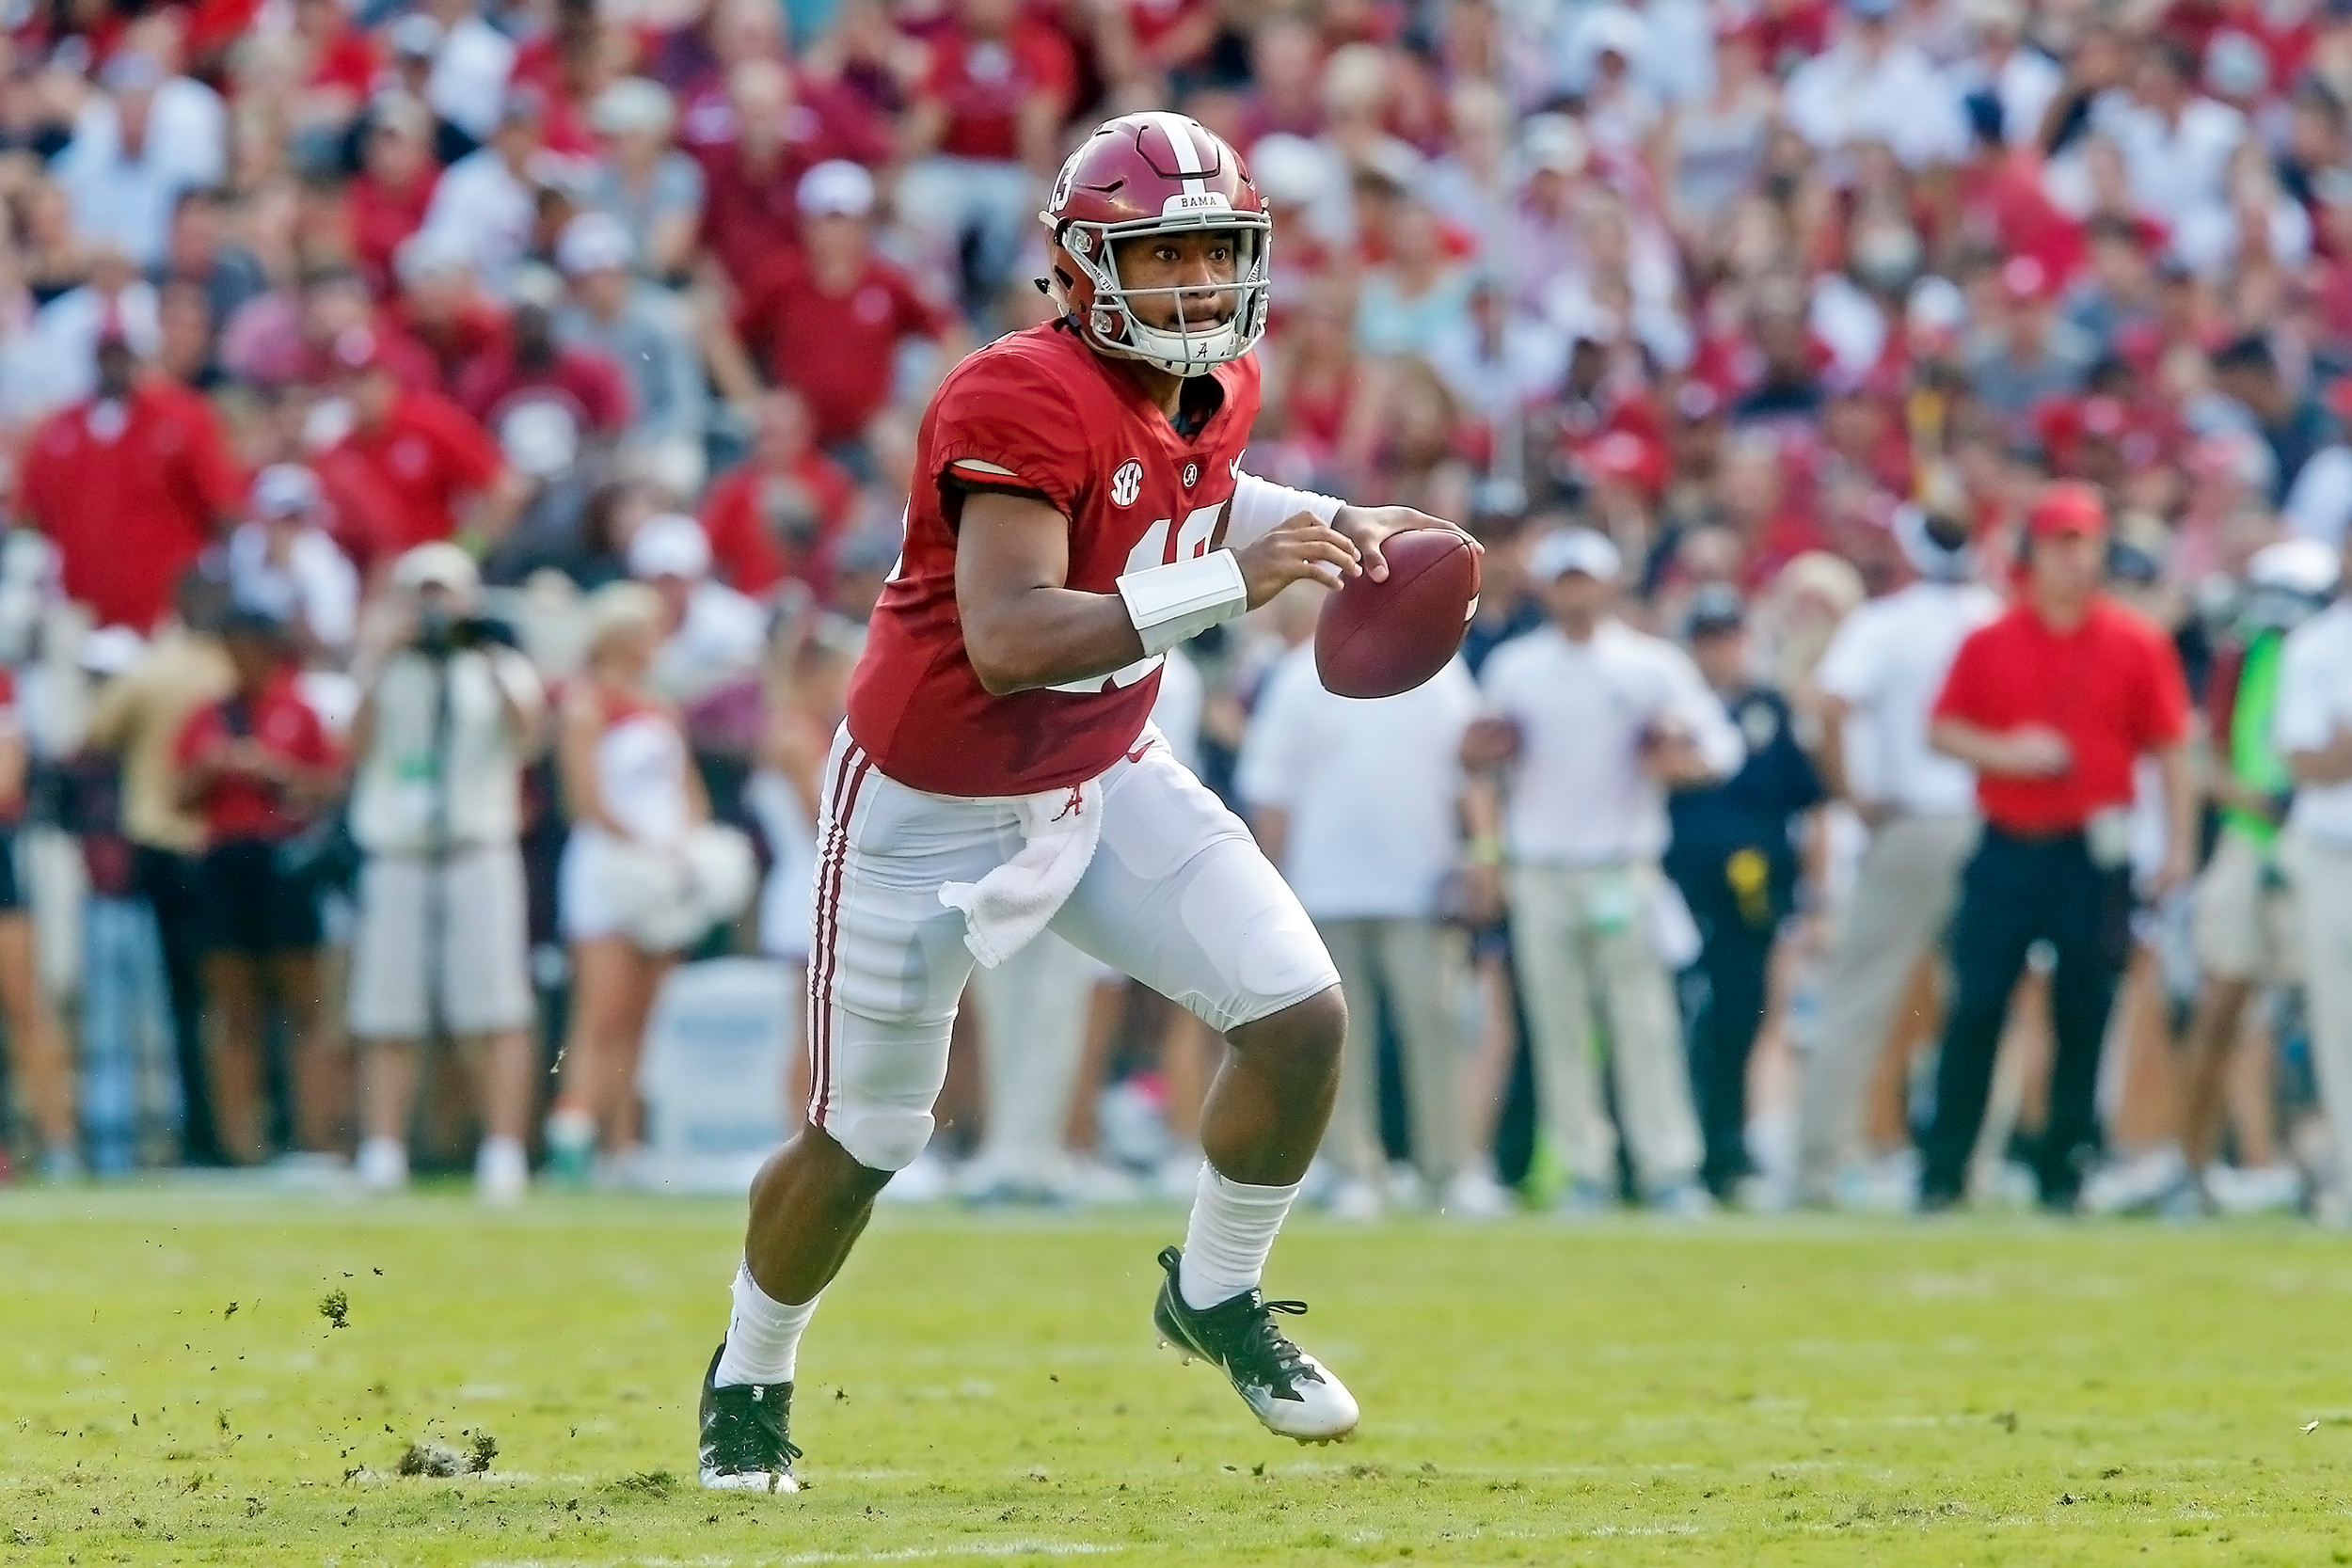 Alabama Crimson Tide quarterback Tua Tagovailoa (13) rushes during the game between the Texas A&M Aggies and the University of Alabama Crimson Tide at Bryant-Denny Stadium.  Jason Clark / Daily Mountain Eagle